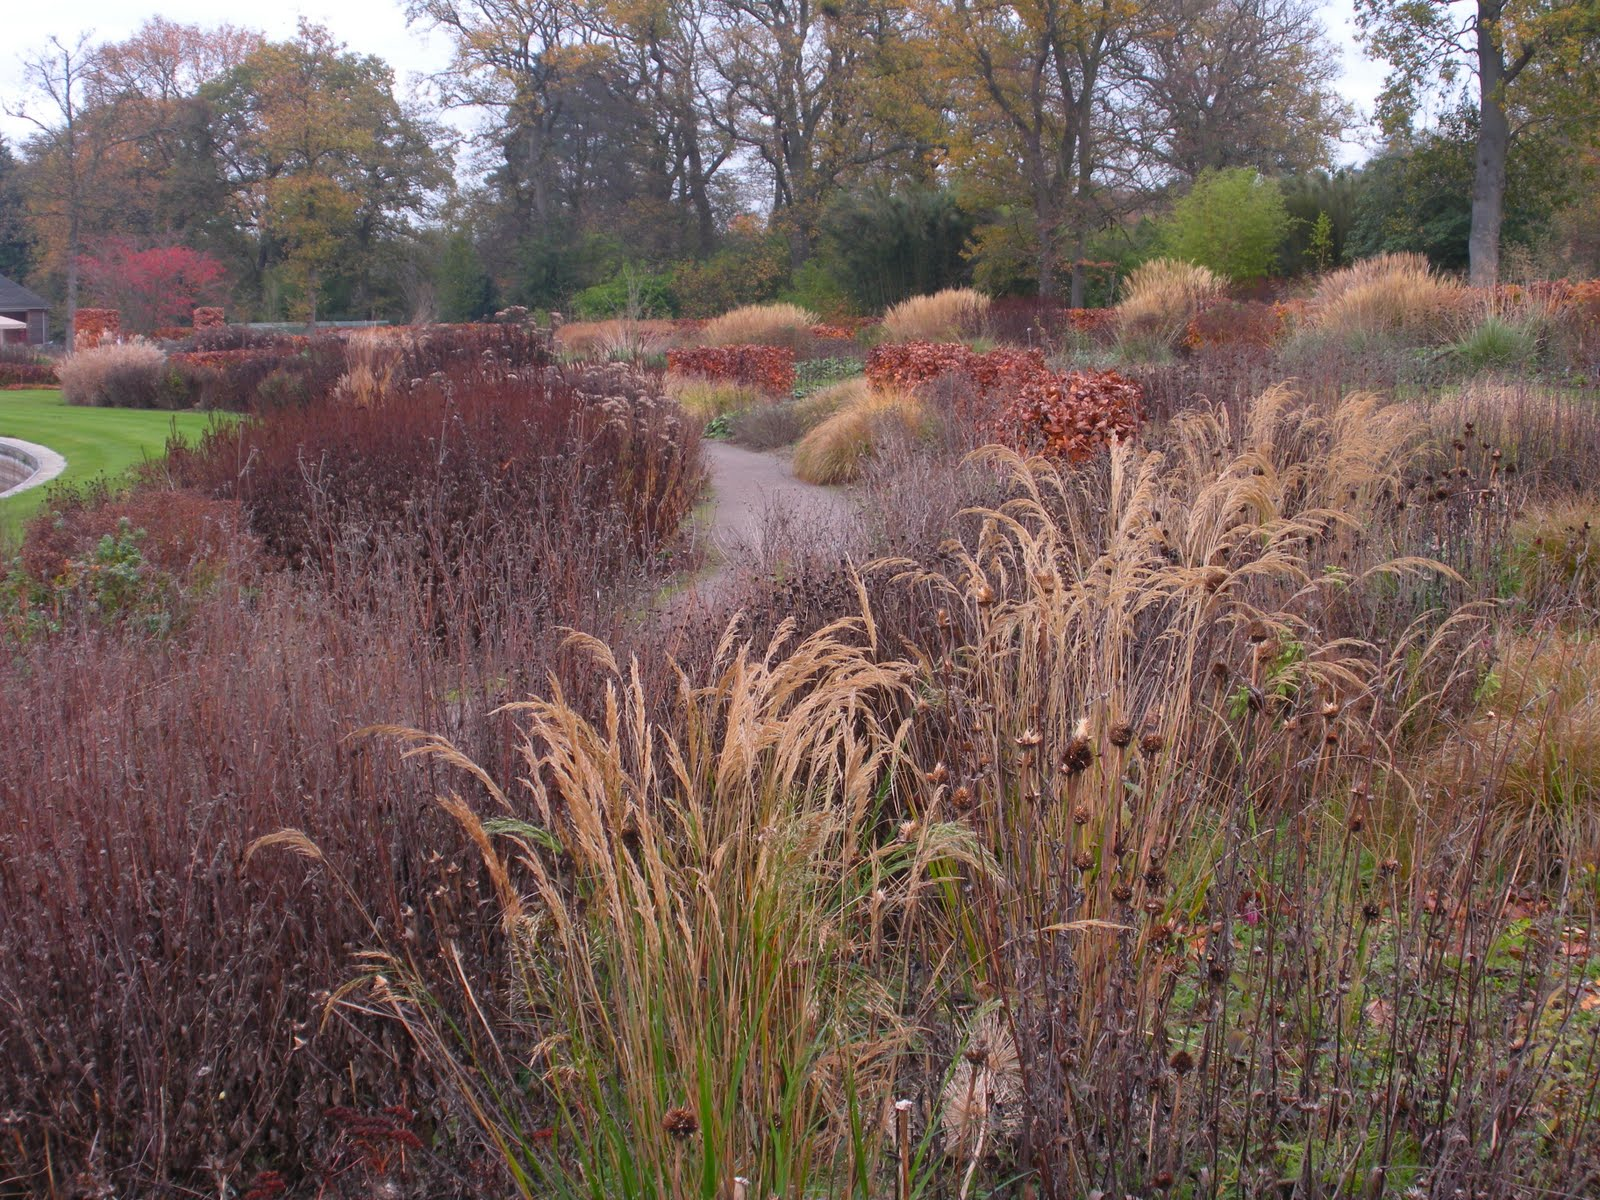 1000 images about wild grasses on pinterest grasses for Wild grass gardens